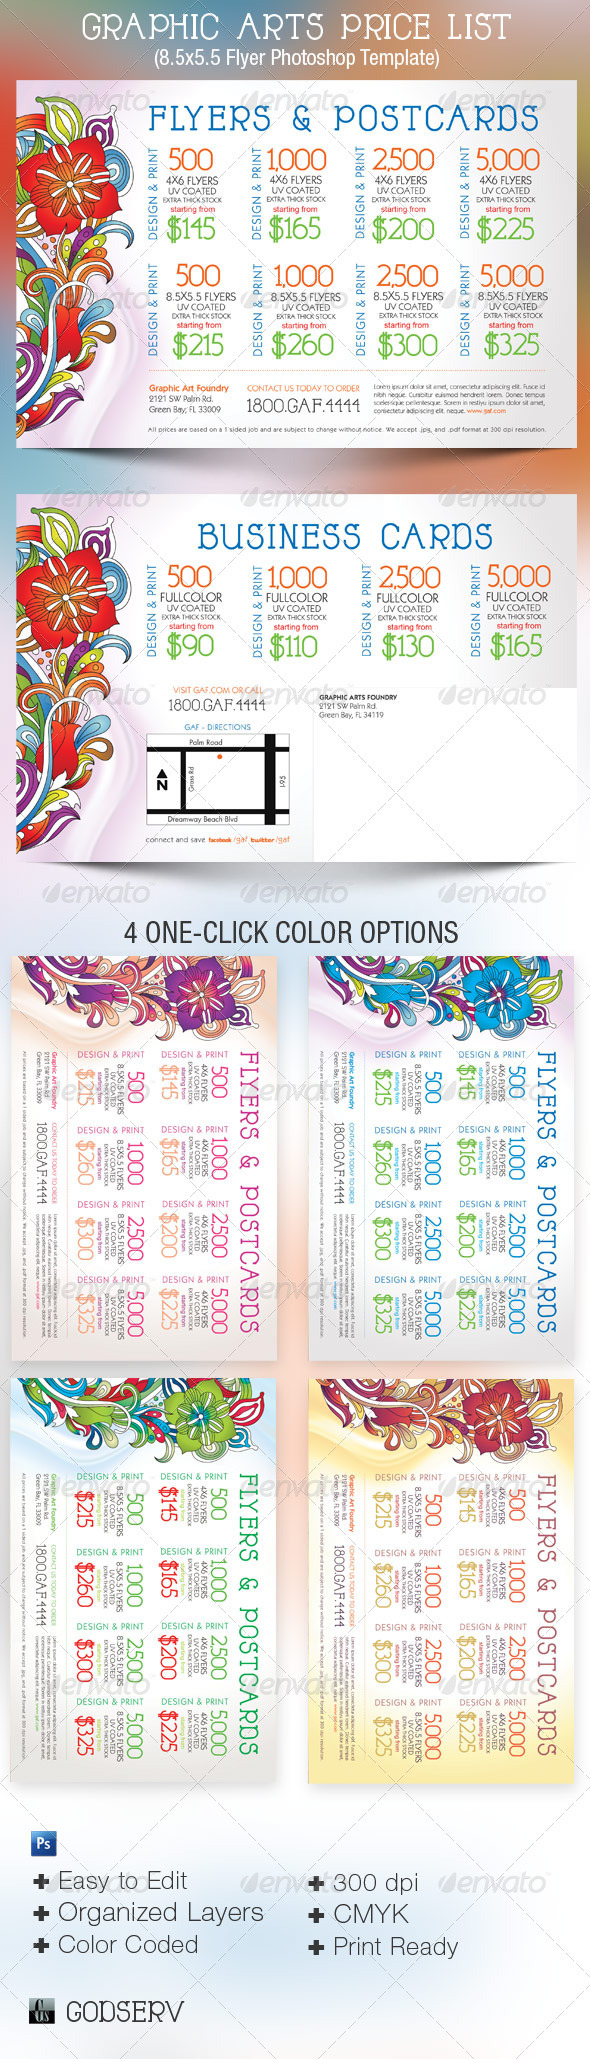 Graphic Arts Price Flyer and Postcard Template - Commerce Flyers